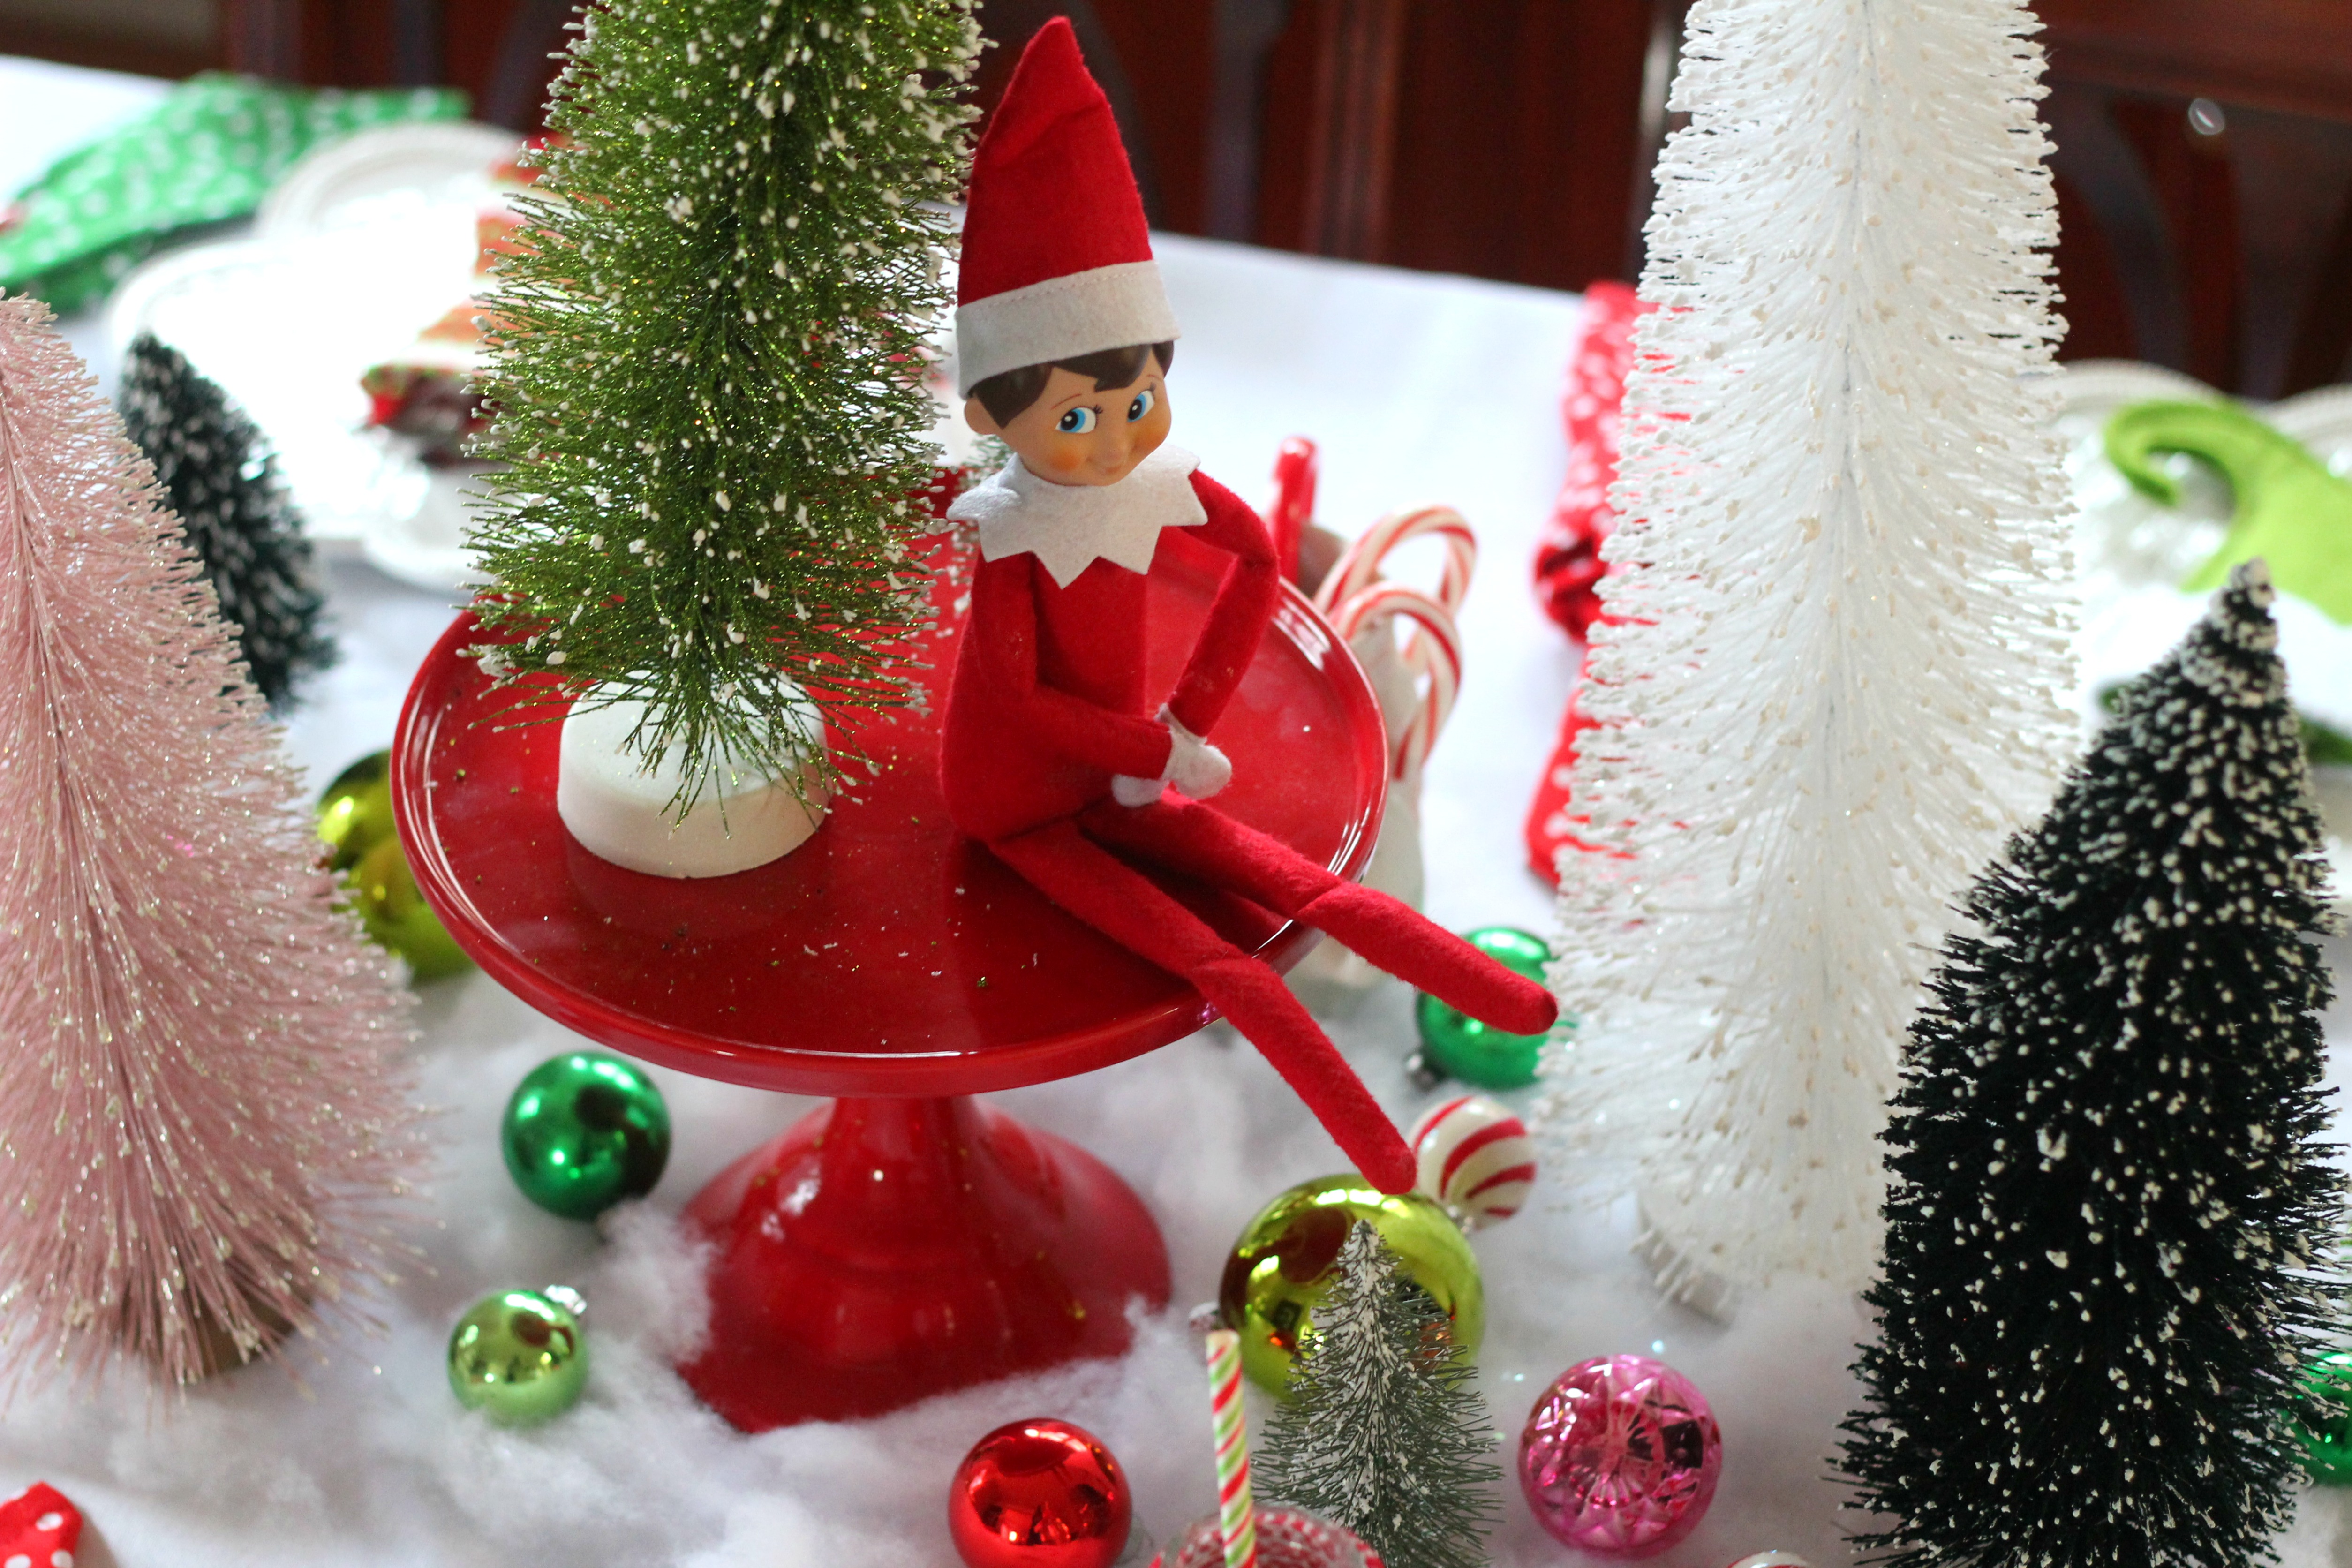 North Pole Breakfast: The Return Of The Elf On The Shelf